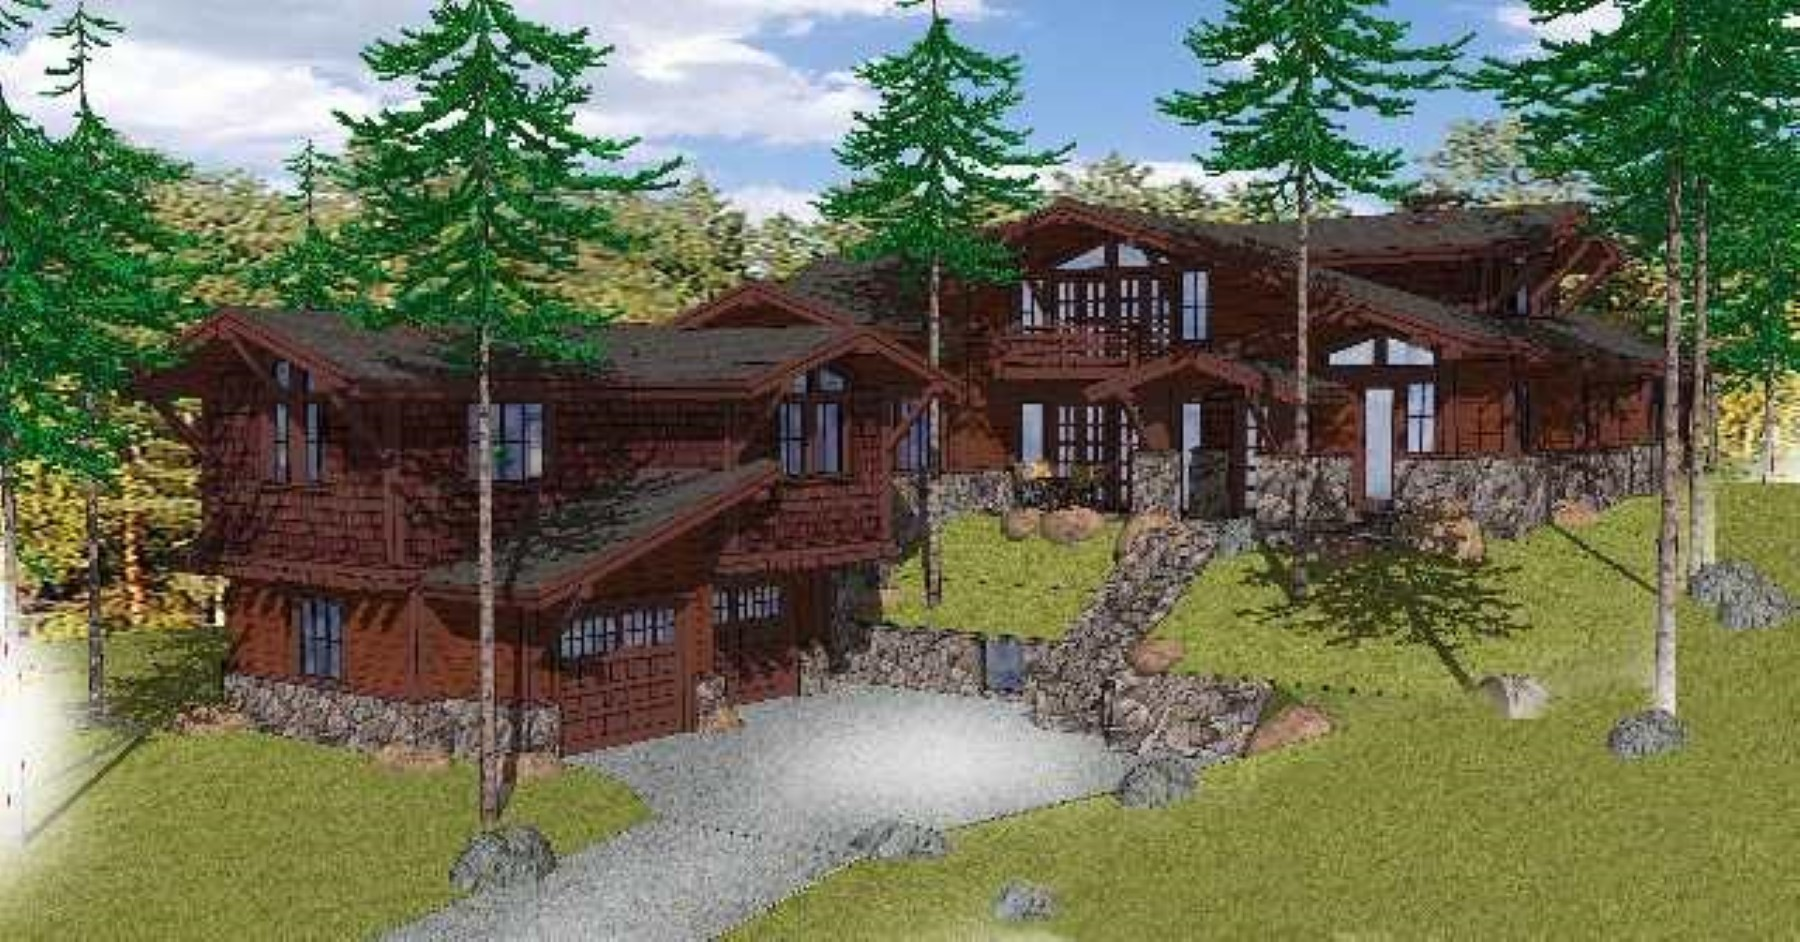 Maison unifamiliale pour l Vente à 2110 Eagle Feather Truckee, Californie 96161 États-Unis